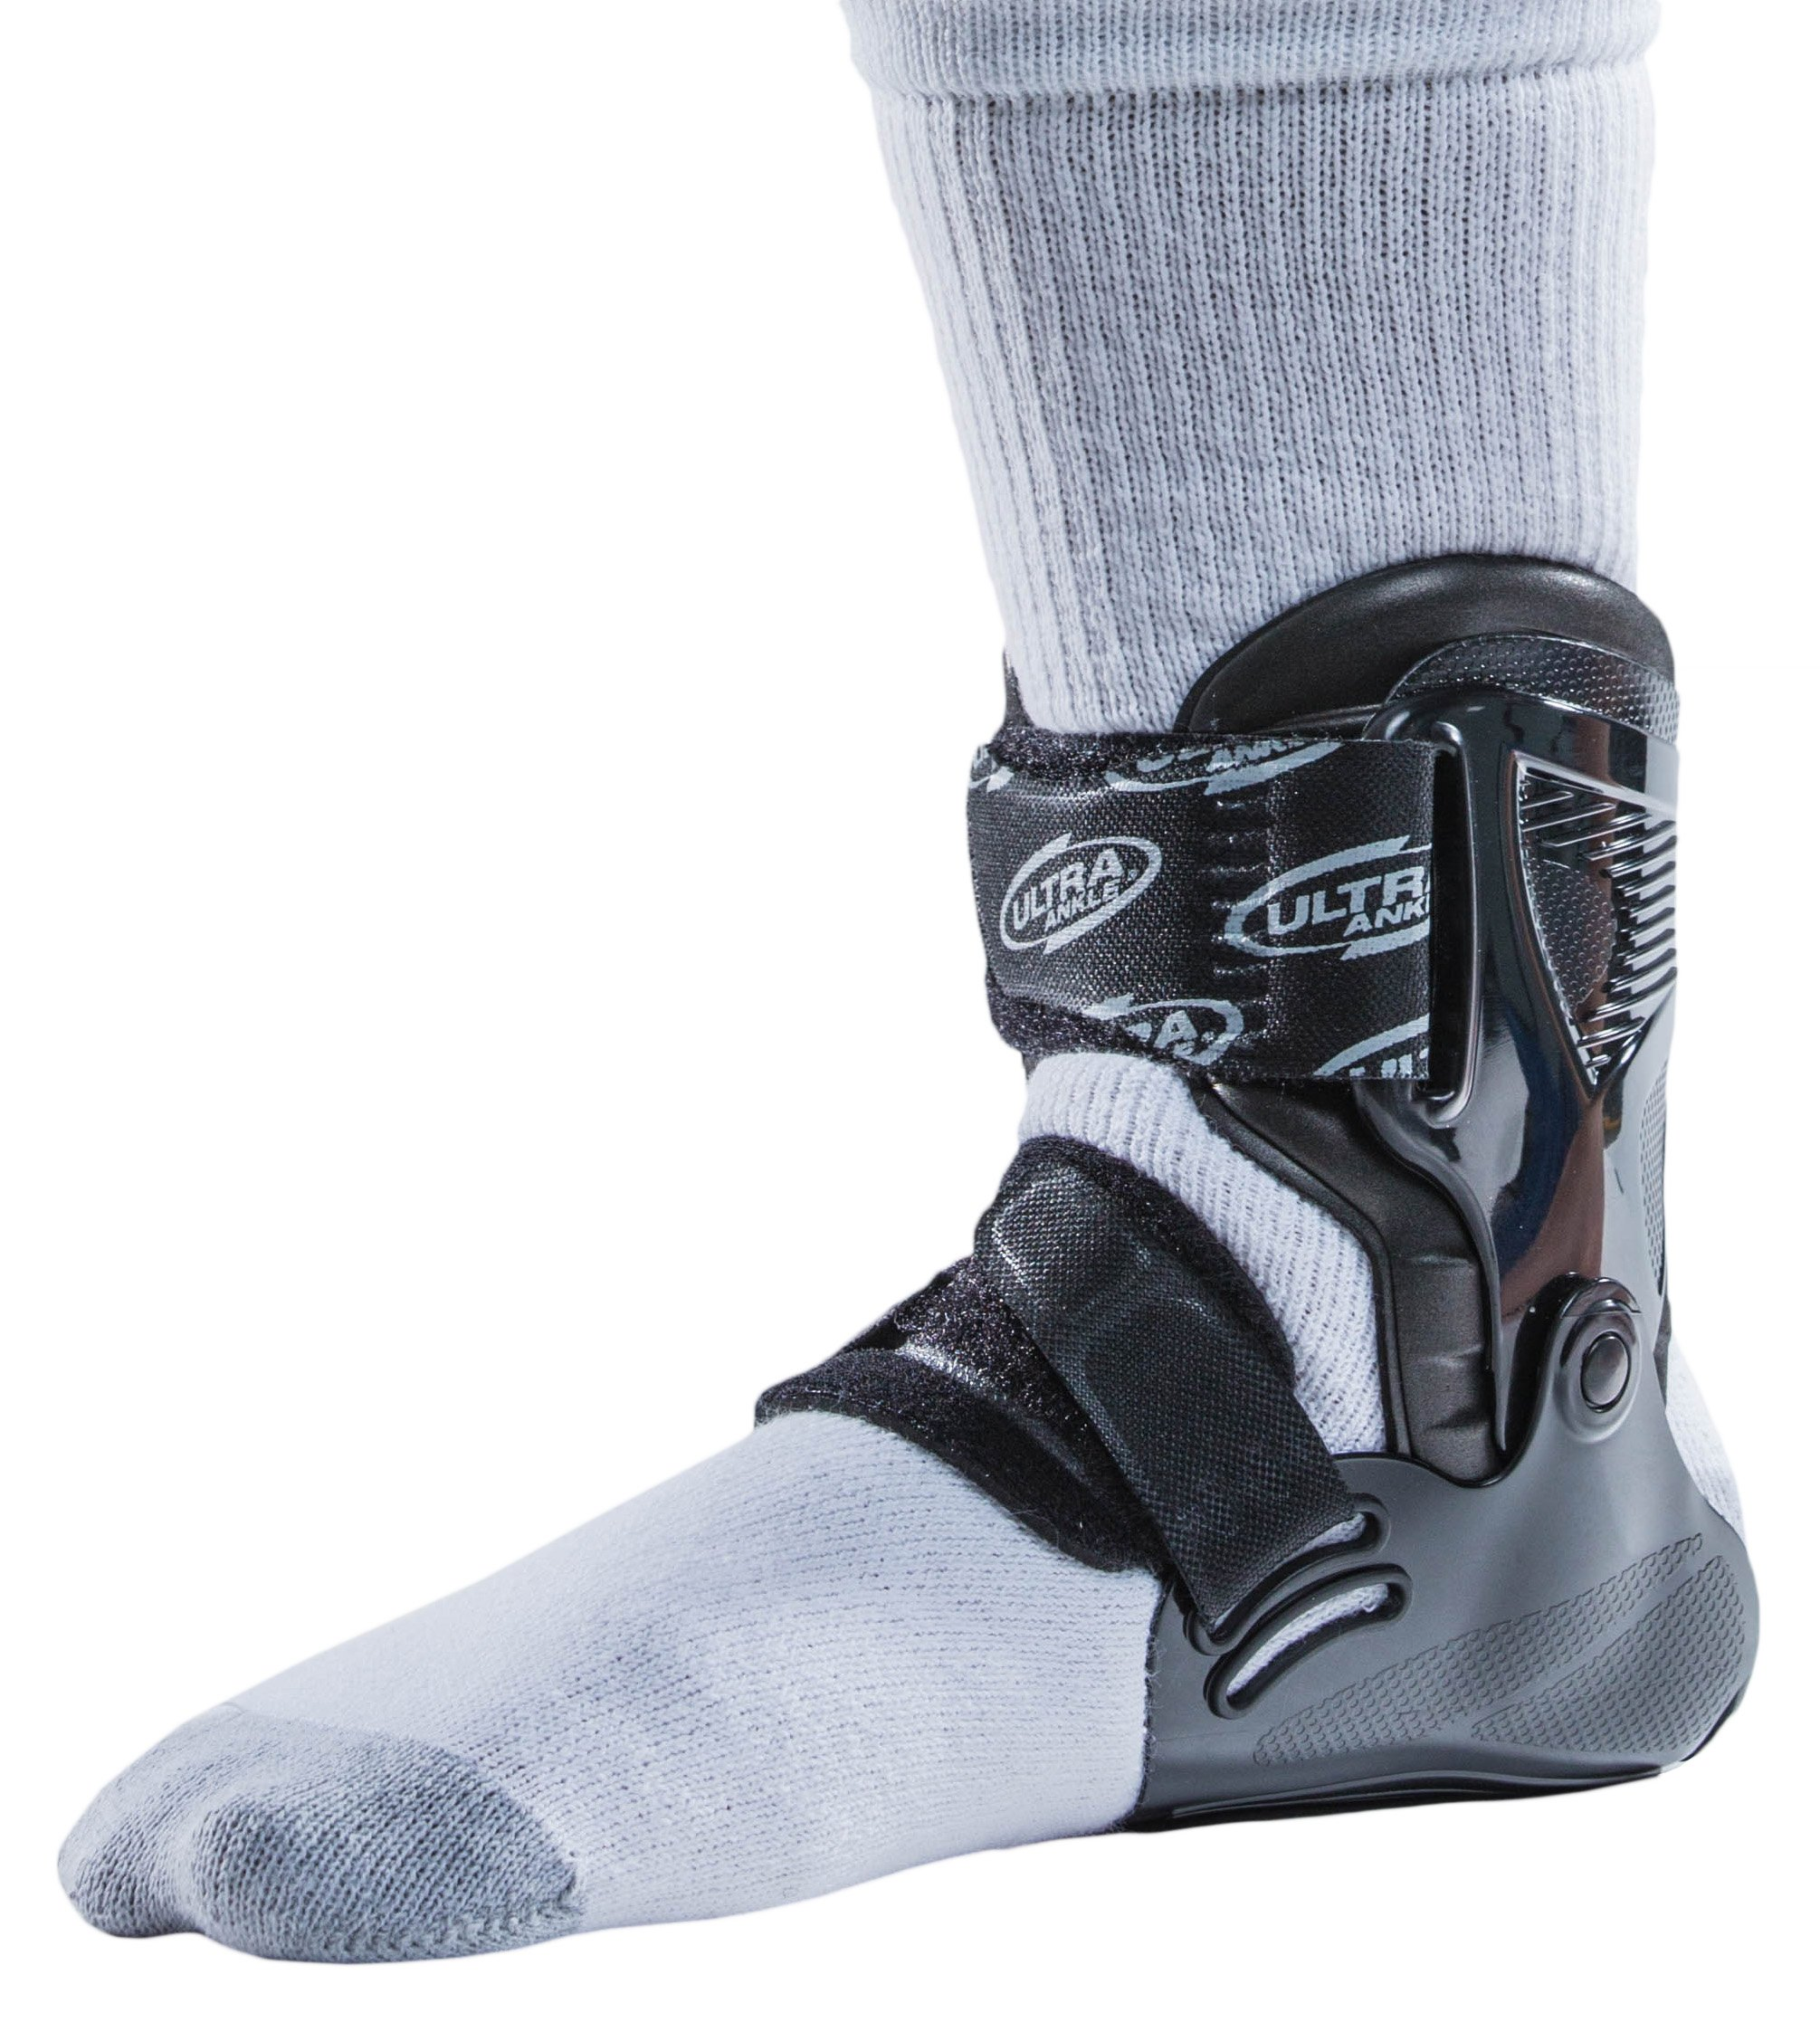 Ultra Ankle Ultra Zoom Ankle Brace for Injury Prevention, Ankle Support and Helping to Prevent sprained Ankles. Performance and Protection Without Limits. (Small/Medium, Black)